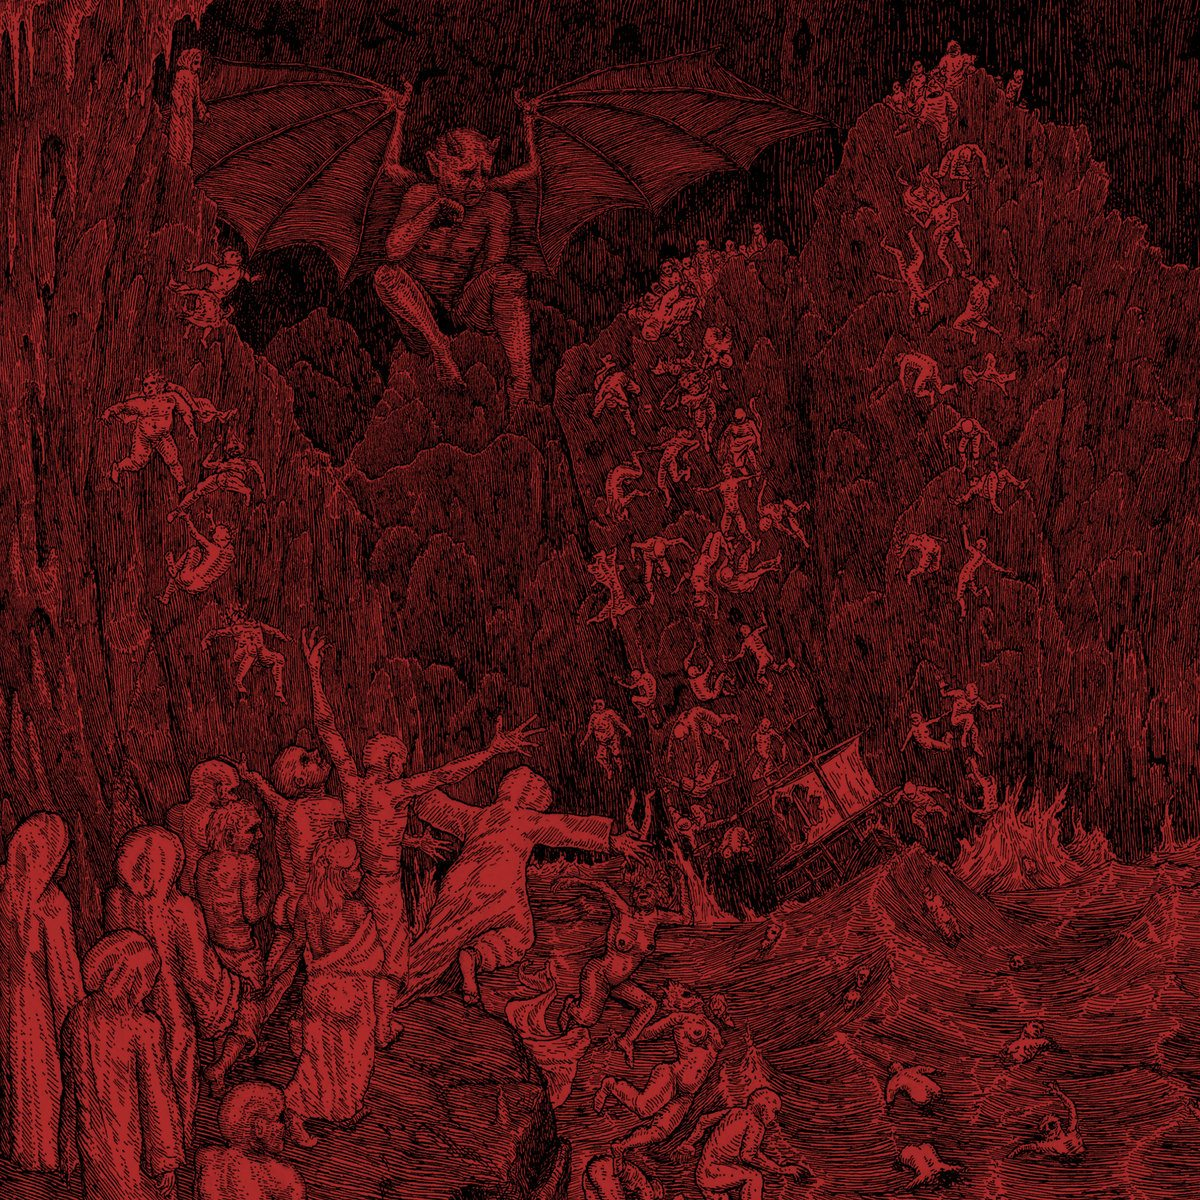 01. Hell - Hell - Oh wow, this album came out of nowhere. Hell is the soundscape of the apocalypse rendered in sludge format. Hell consists of thick, viscous, brownish riffs repeatedly drilled into your cranium without any sign of subsidence, as the drums and bass summon up an ominous and ethereal background hellscape. The word demonic is freely used and abused in metal literature, but I cannot think of a more appropriate descriptor for the vocals on this record. Hell also shows signs of unexpected sophistication where the closing tracks utilize acoustic guitars and violins to color the hellscape with even more malevolence.